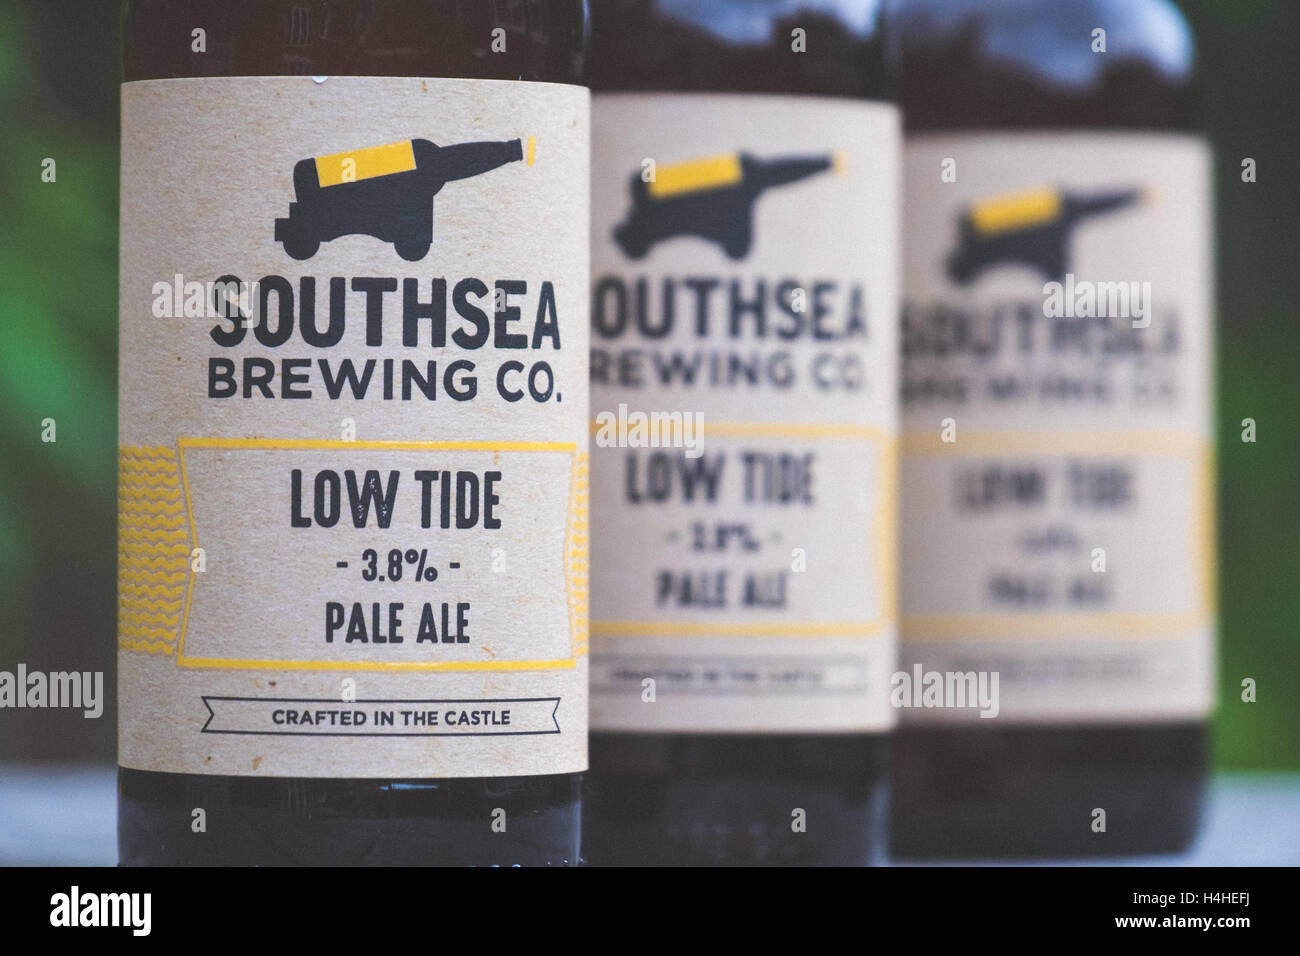 Low Tide Pale Ale, brewed by Southsea Brewing Co. which is an artisan brewery located in an old ammunition storage - Stock Image